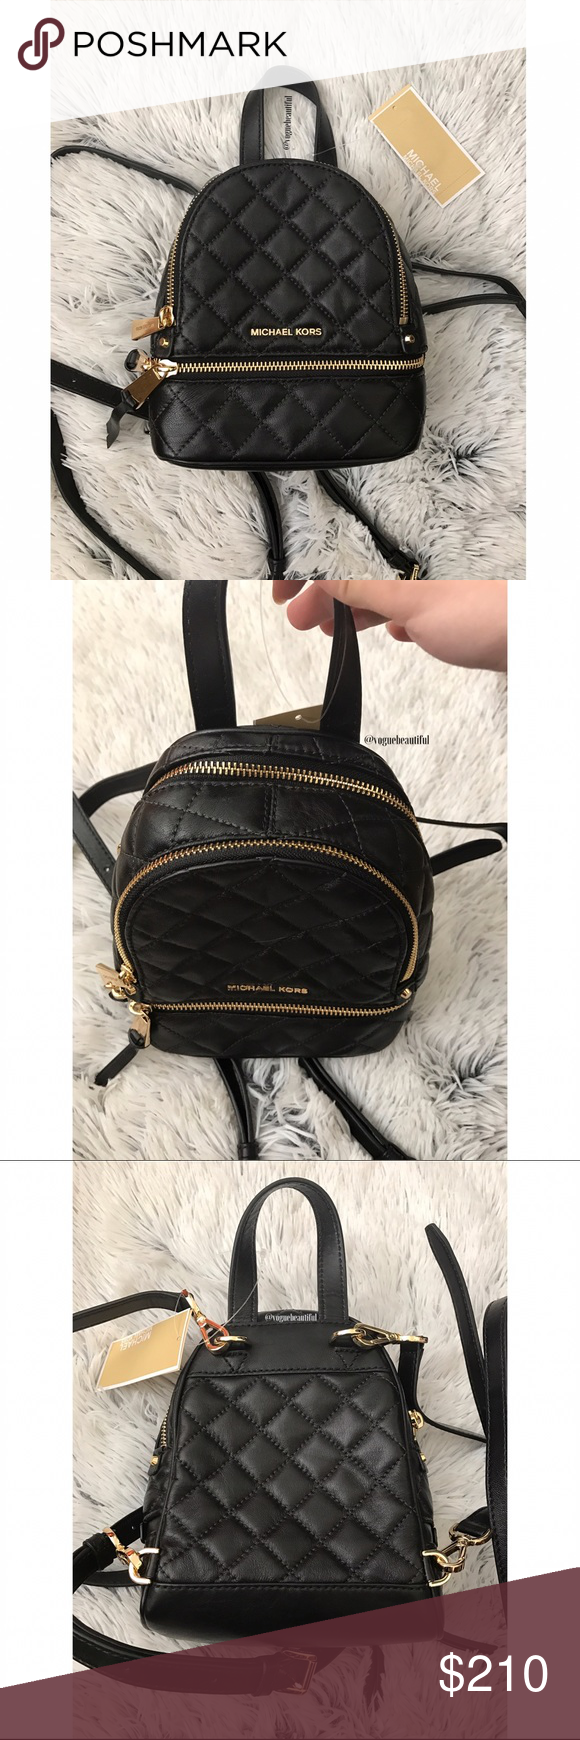 e65fcf72ddd62b NWT Michael Kors Rhea Mini Messenger Backpack New with tags Michael Kors  extra small mini messenger